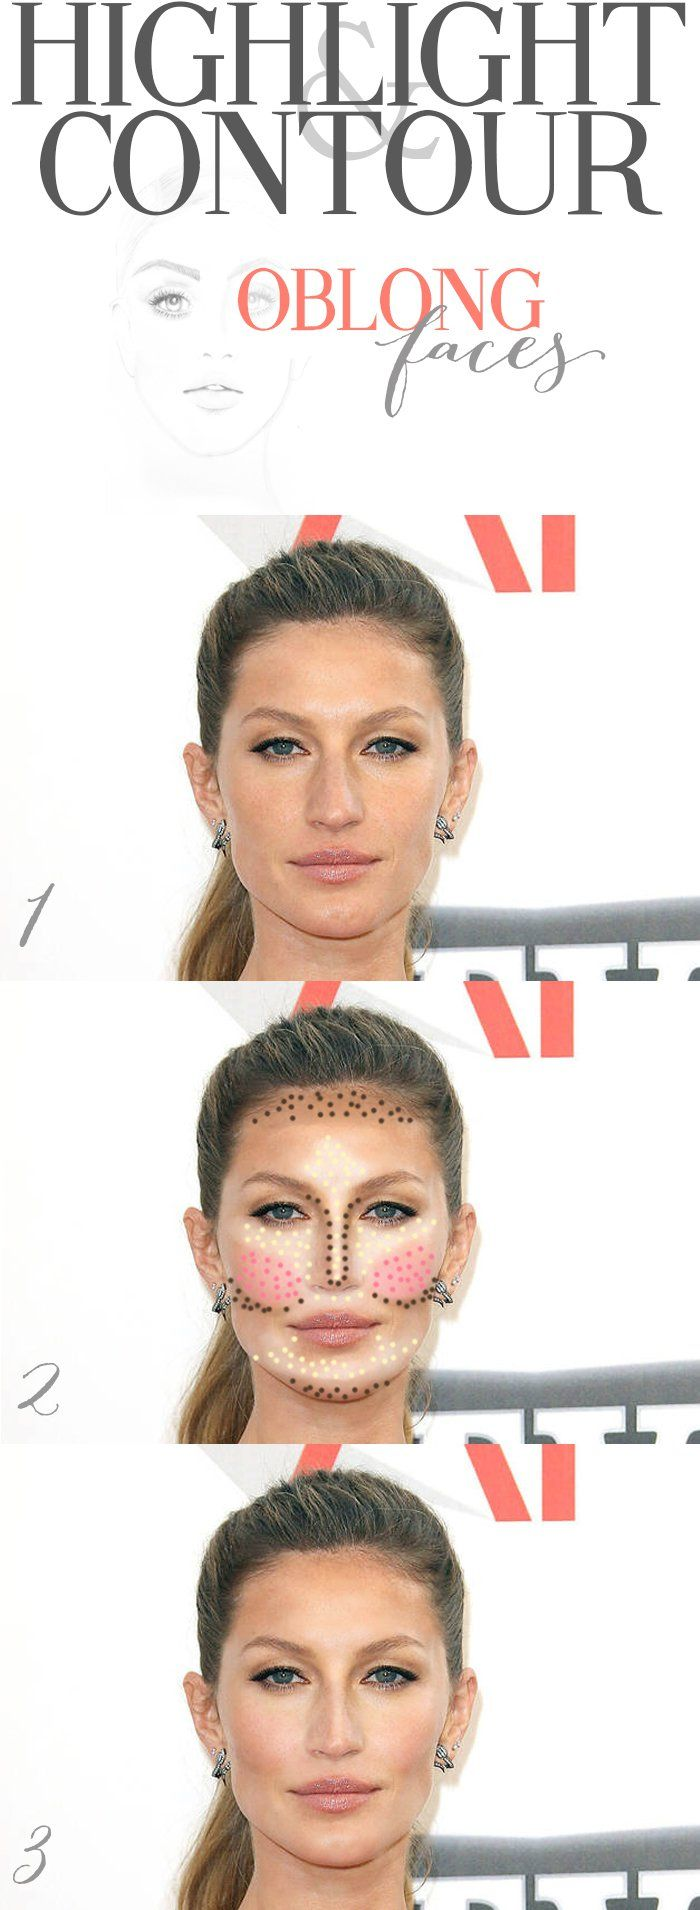 Highlighting and contouring for oblong faces.